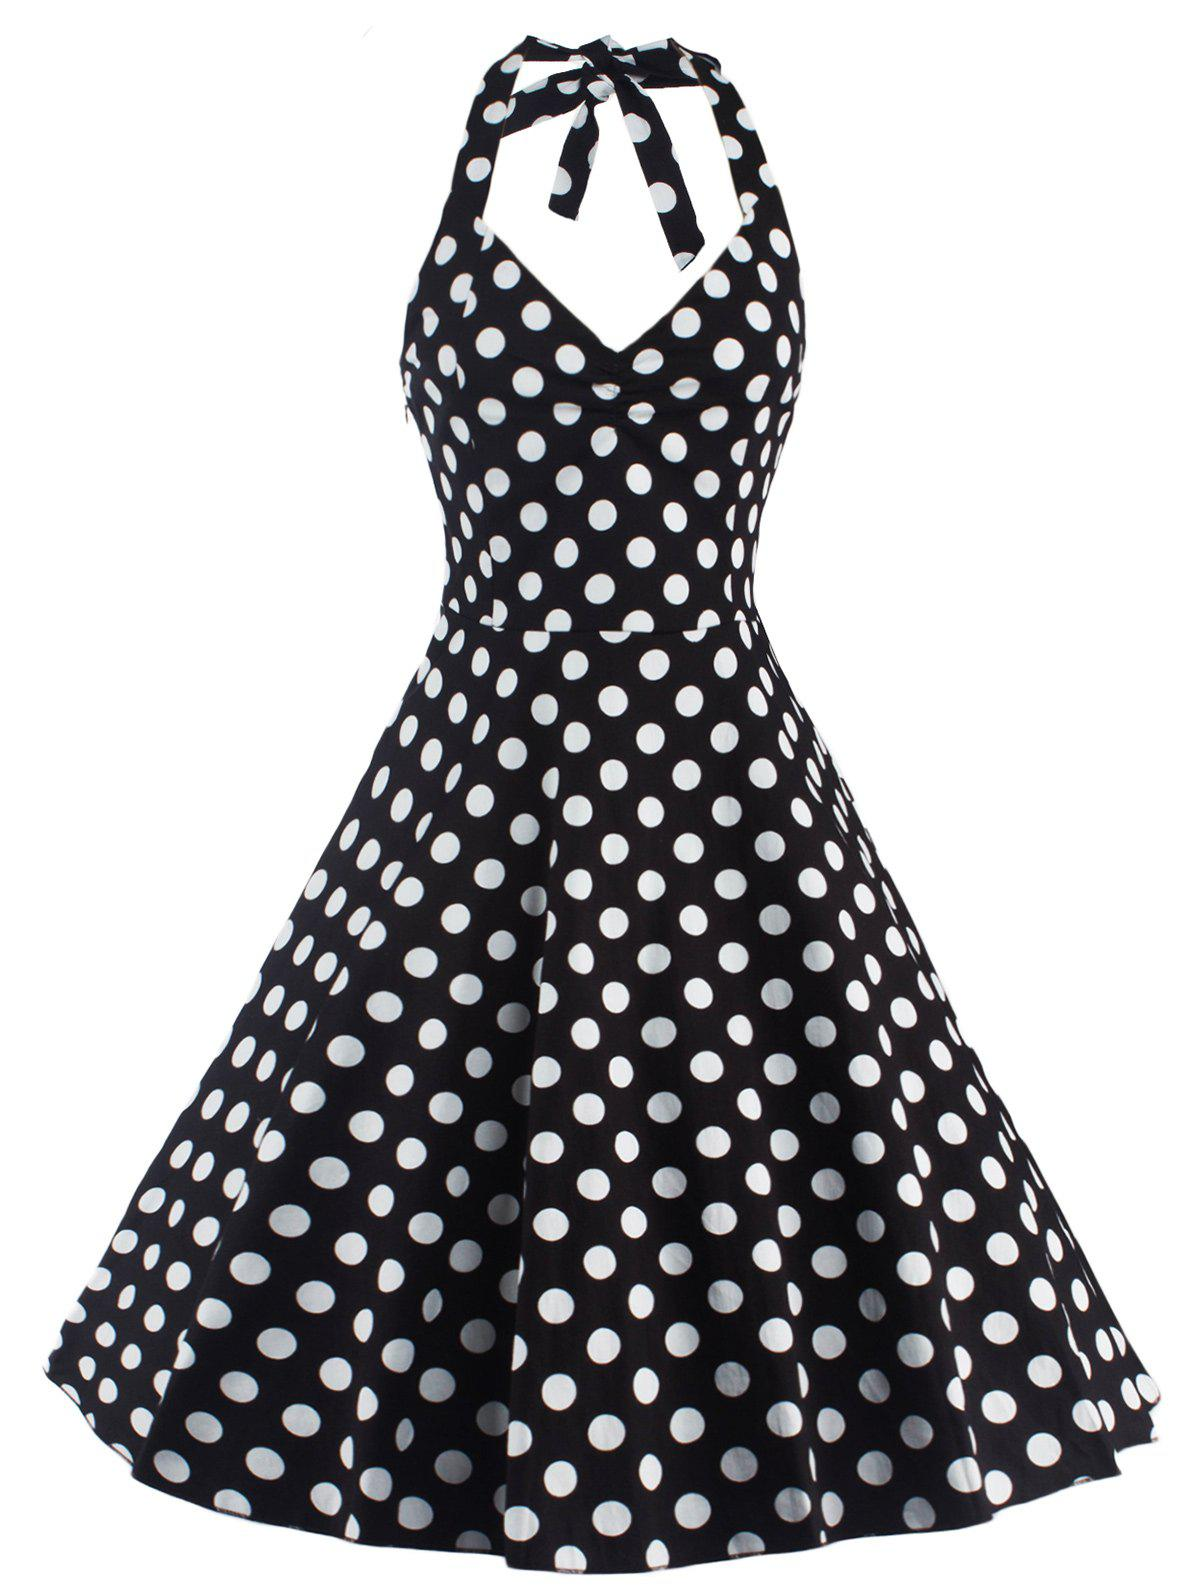 Store Polka Dot Halter Pin Up Flare Sleeveless Dress